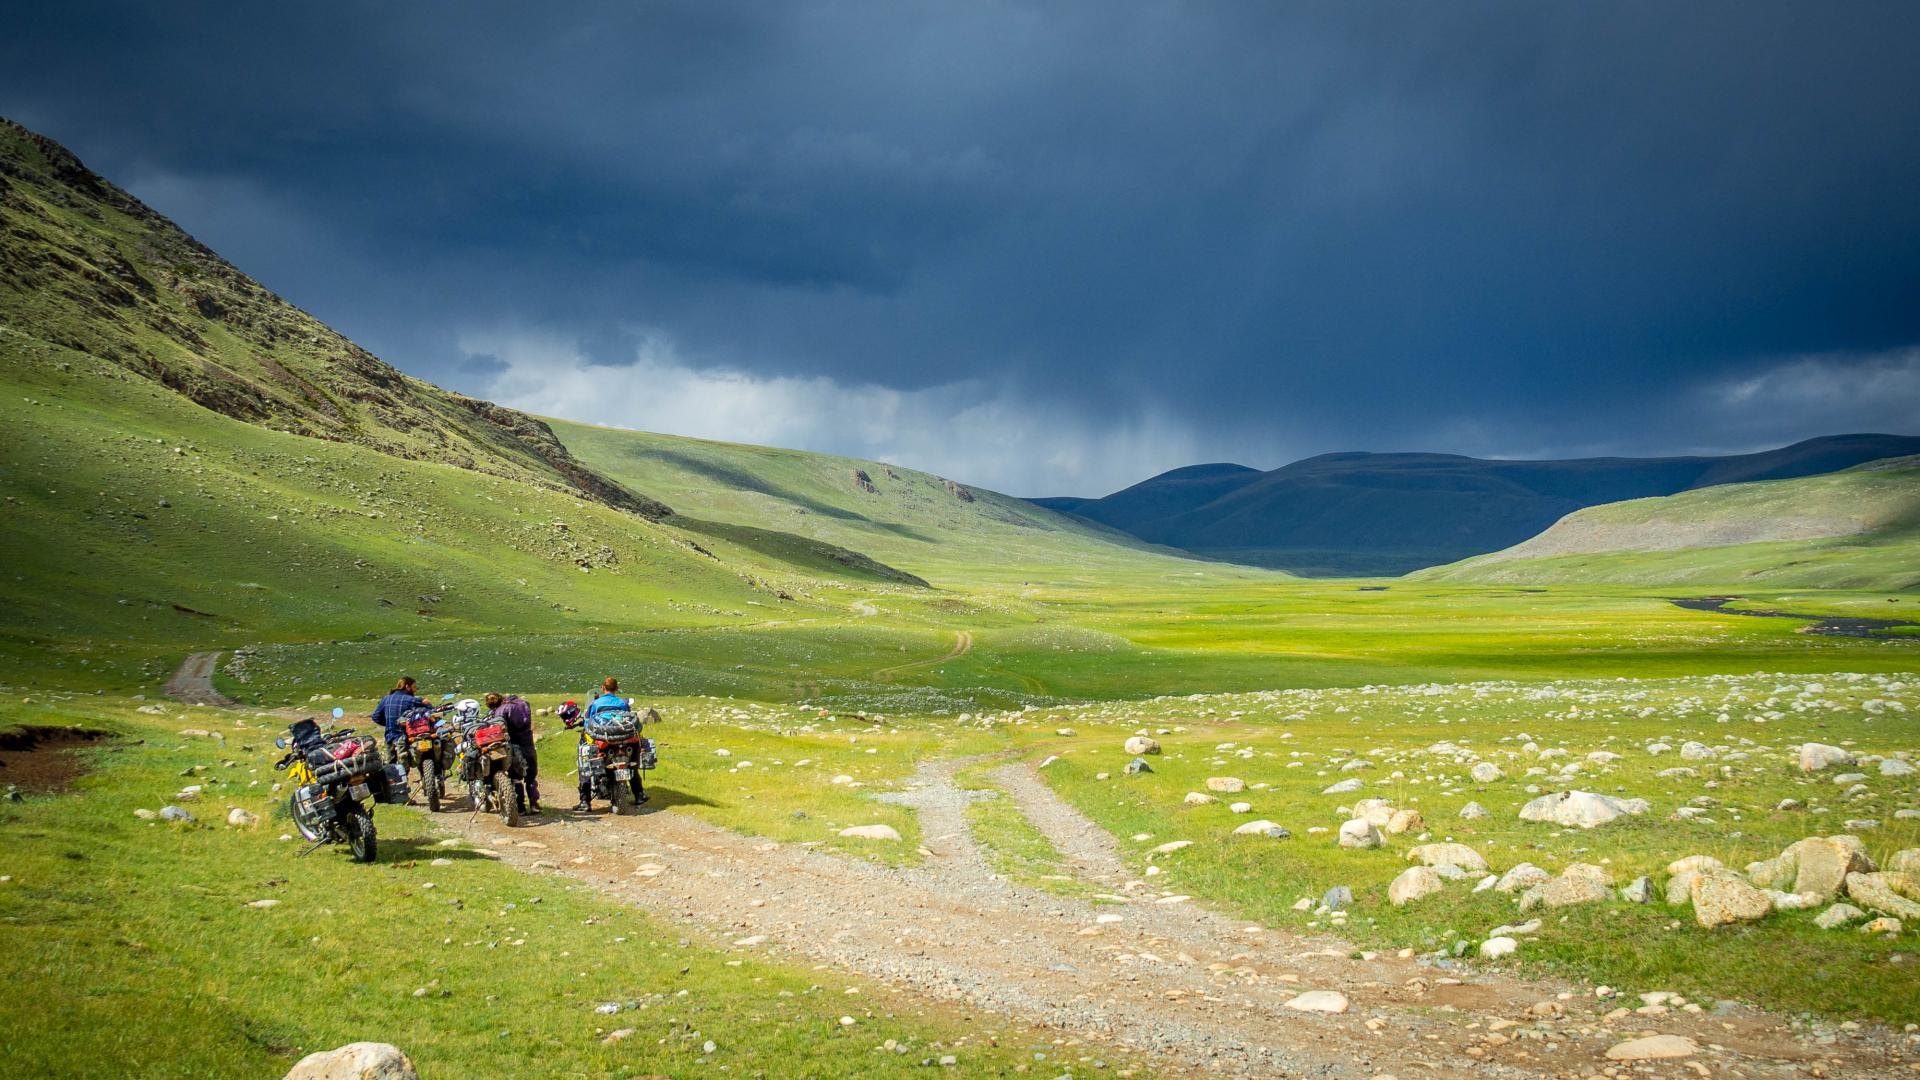 Mongolie59